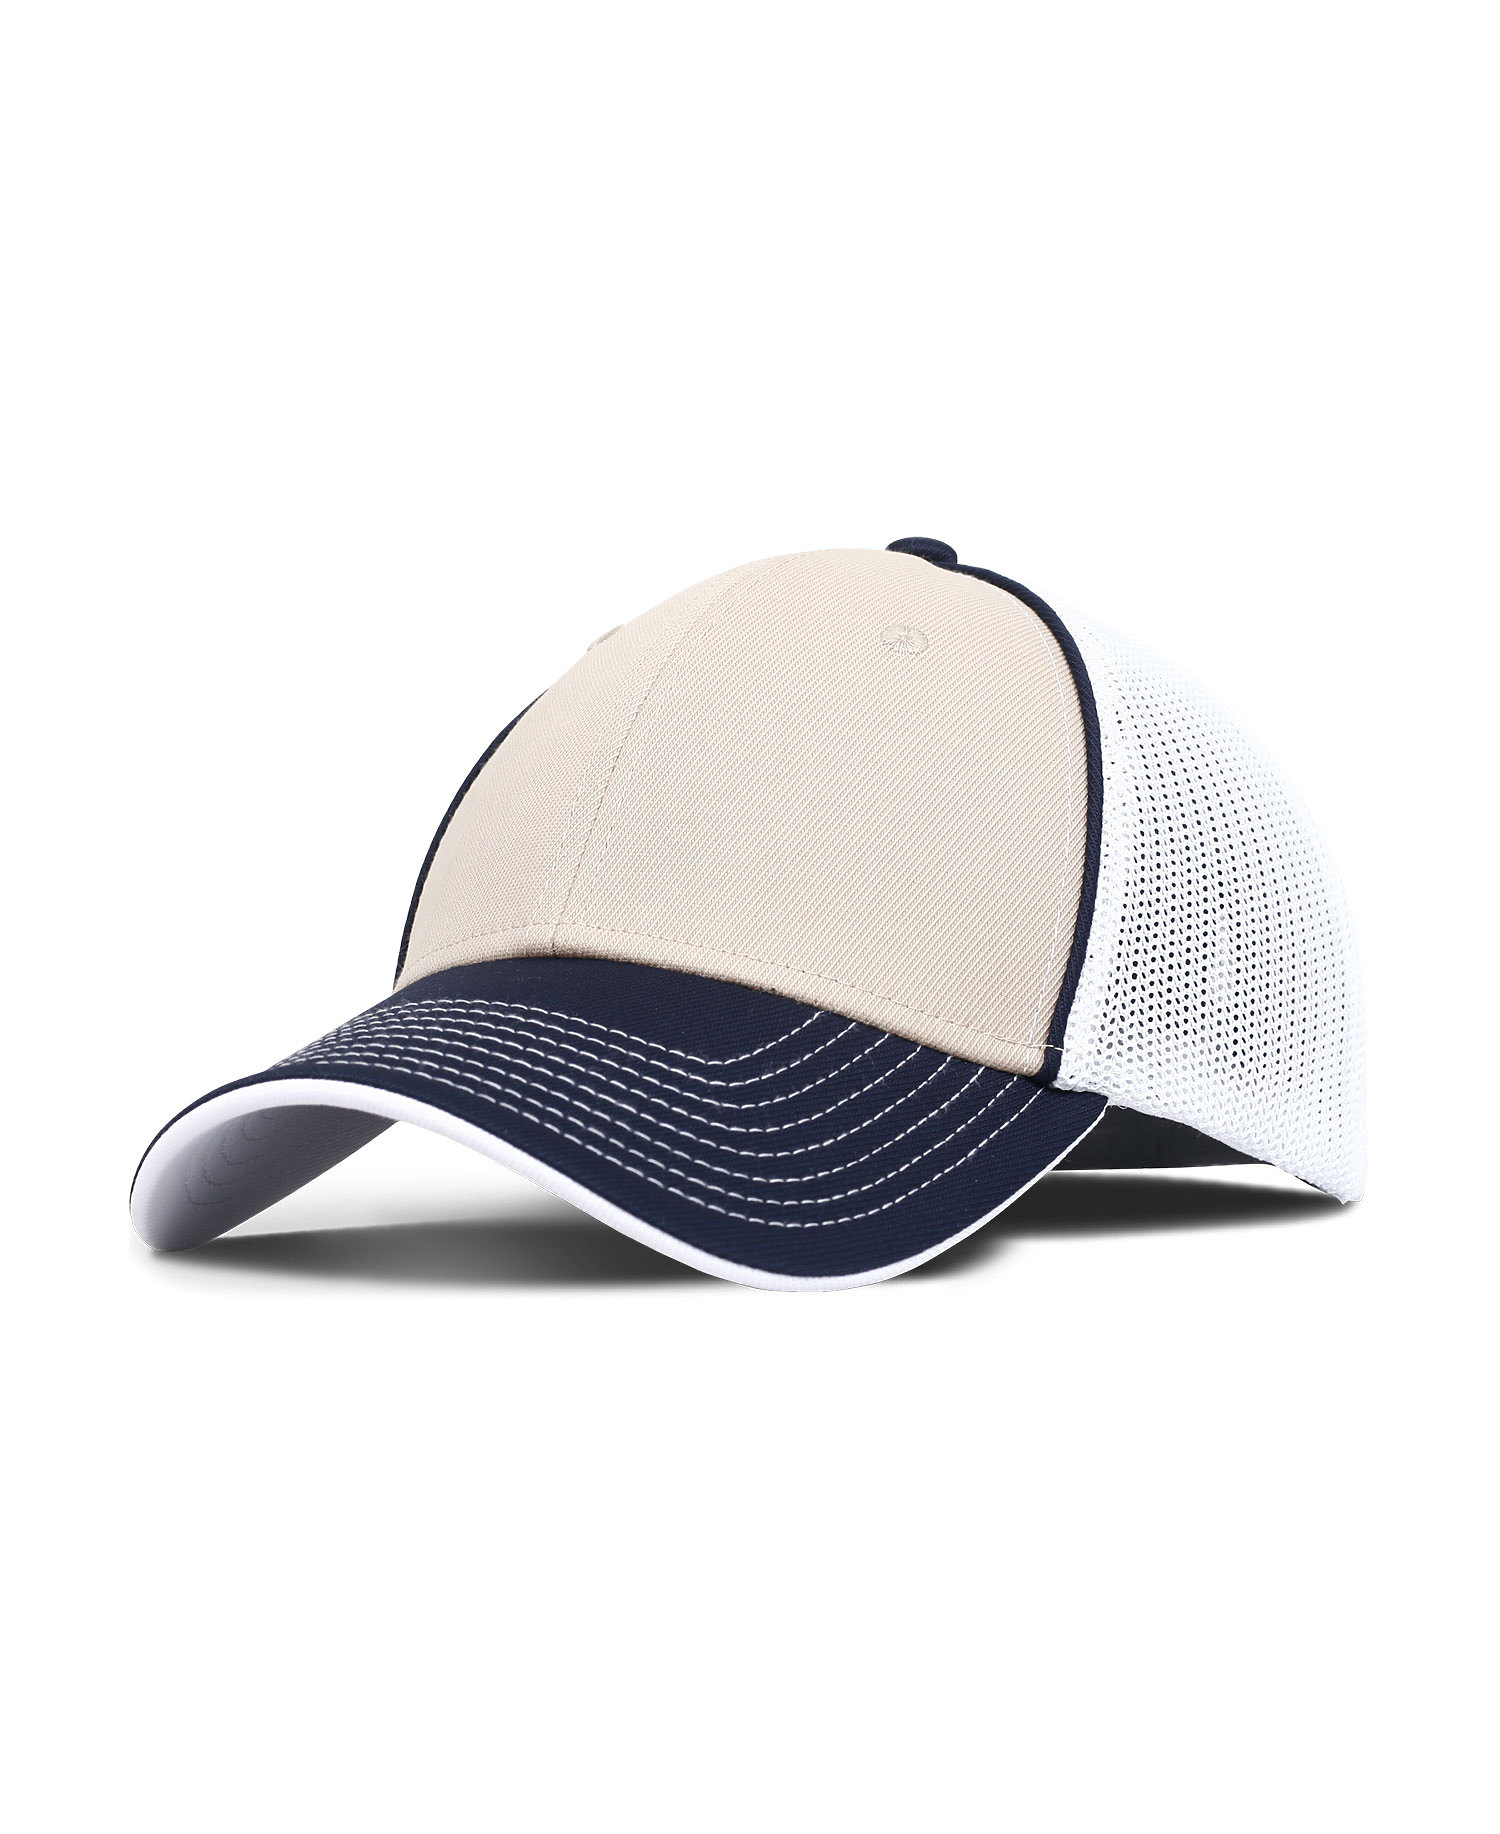 Fahrenheit F0735 - Cotton Twill with High Tech Mesh Cap  3.88 - Headwear 5010d957efa2